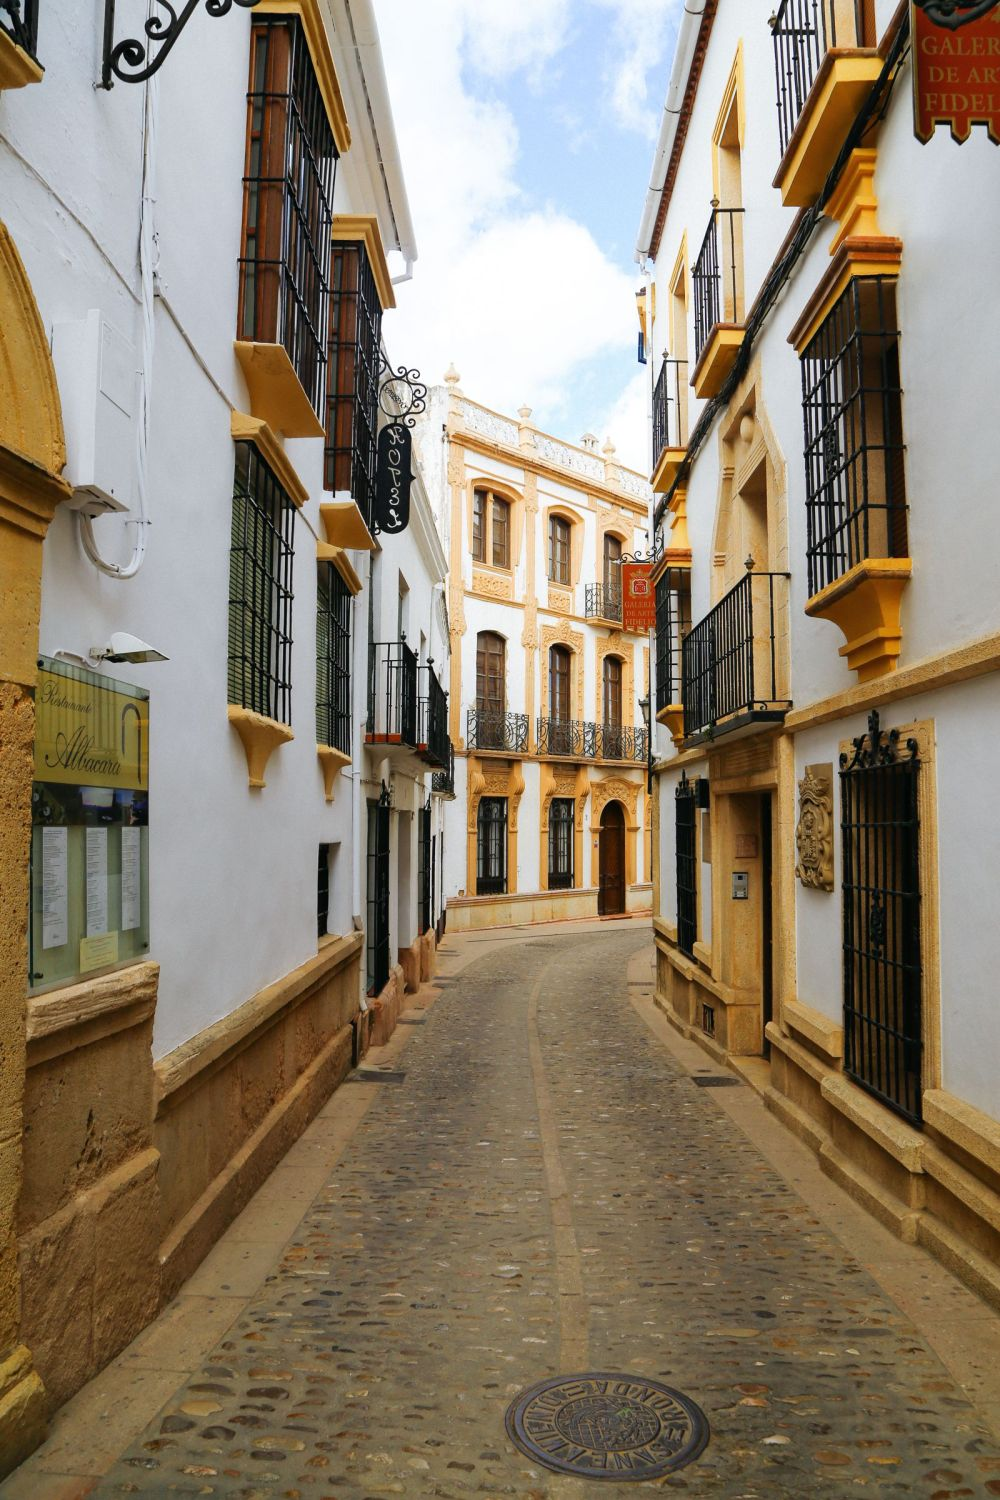 Postcards From Spain - Malaga, Ronda And The Alhambra (9)